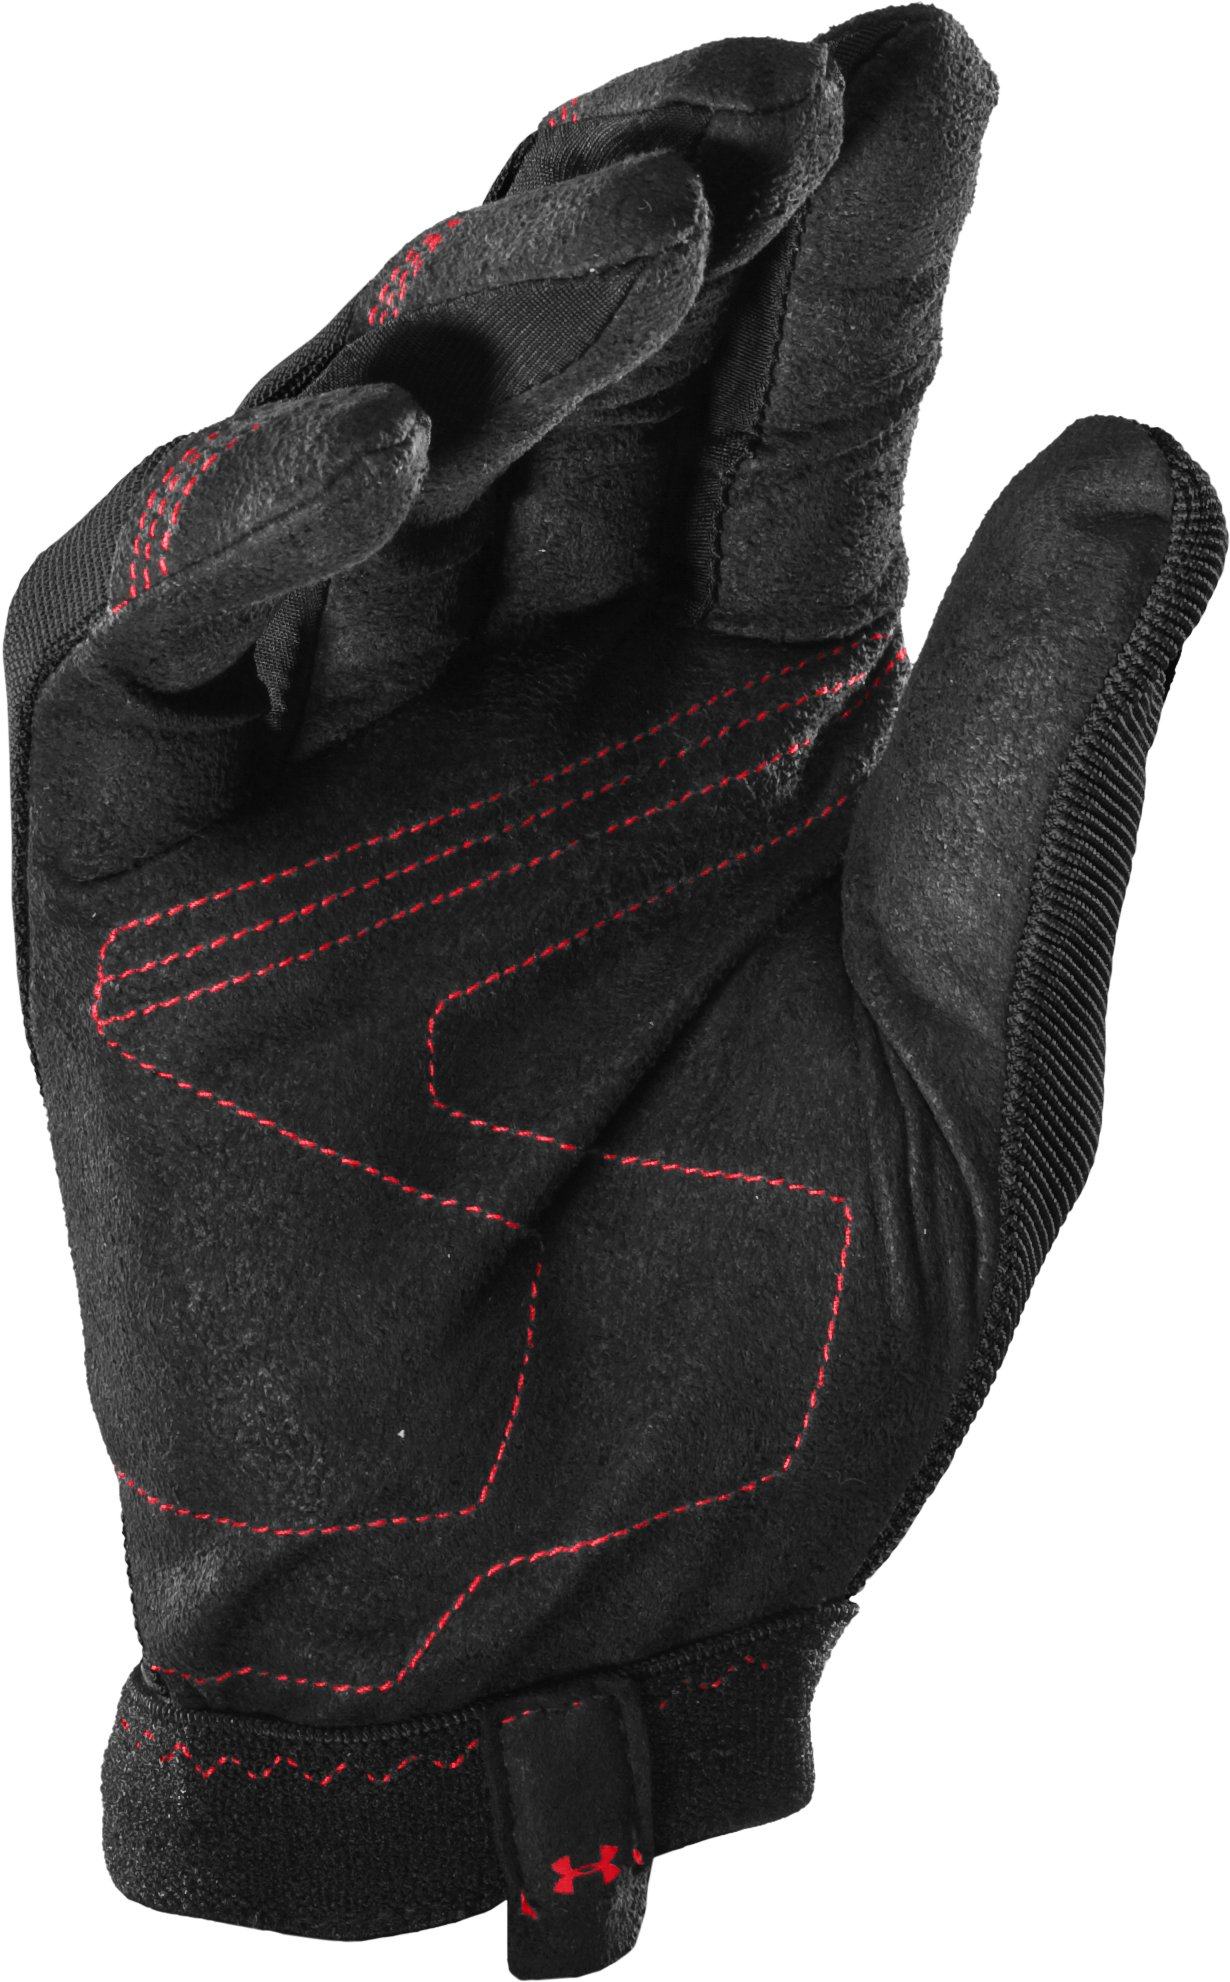 Men's Utility Gloves, Black ,